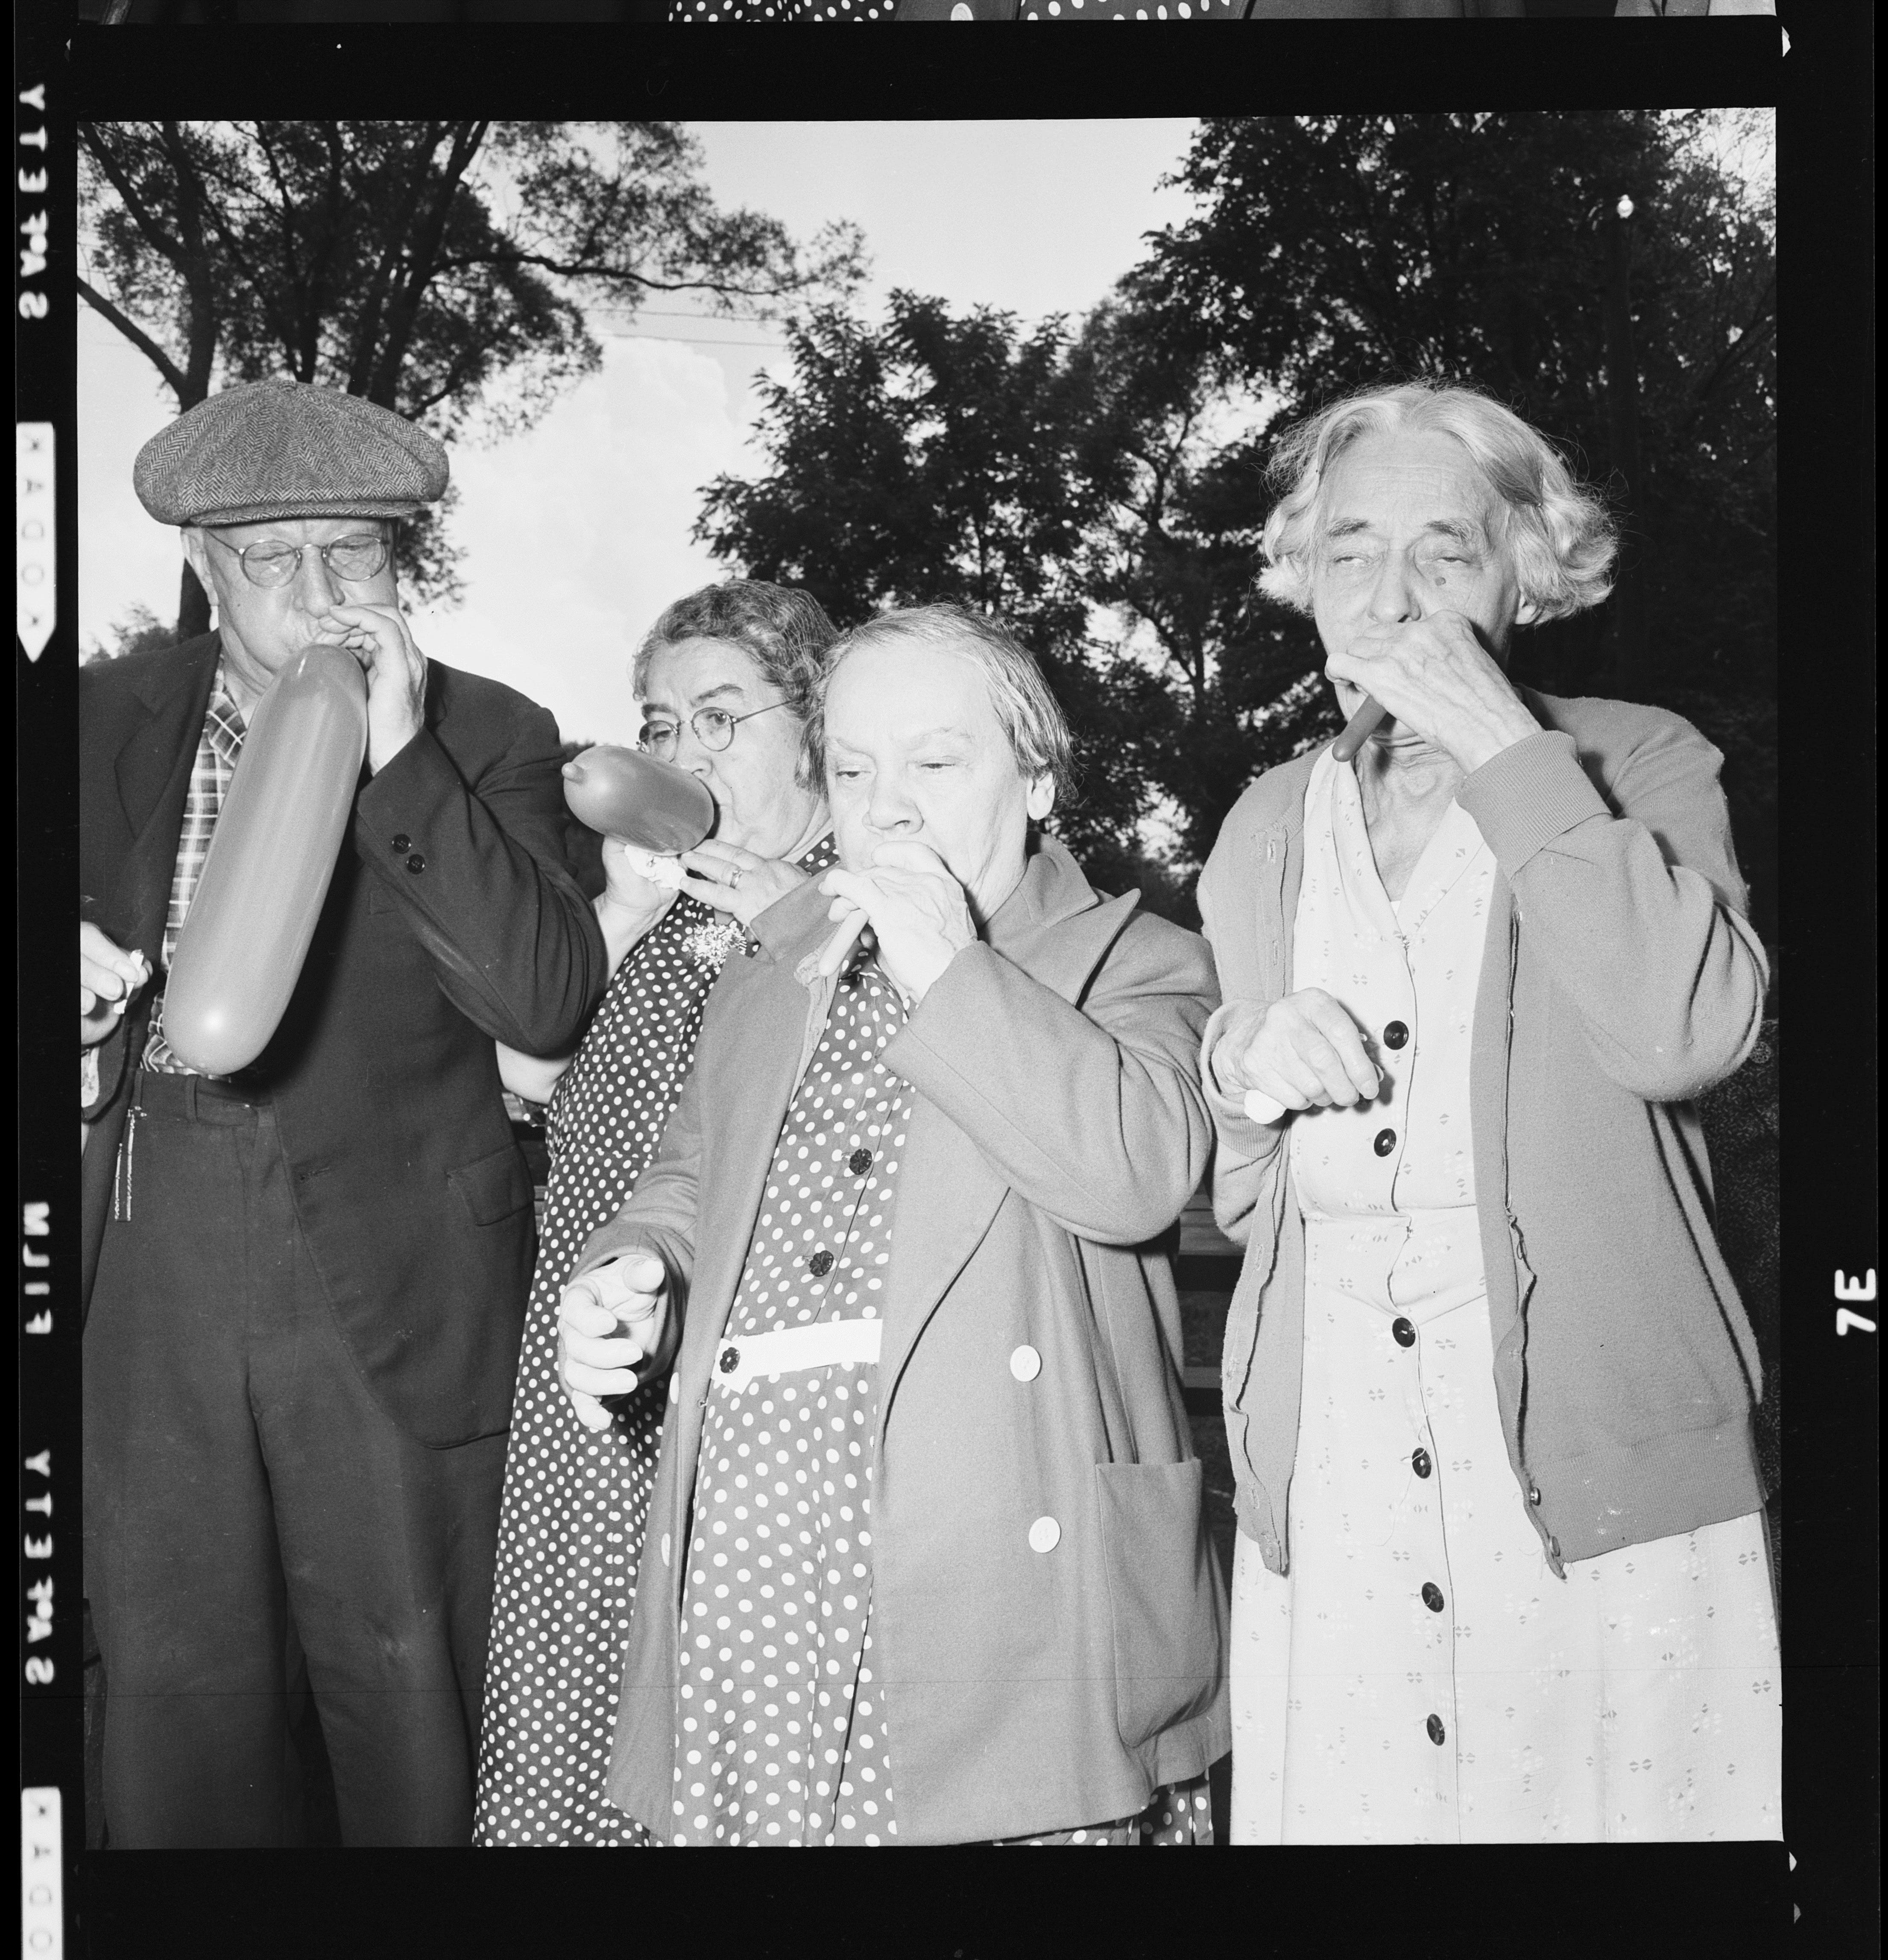 Residents at Sunnyside Home for the Aged -  1950s